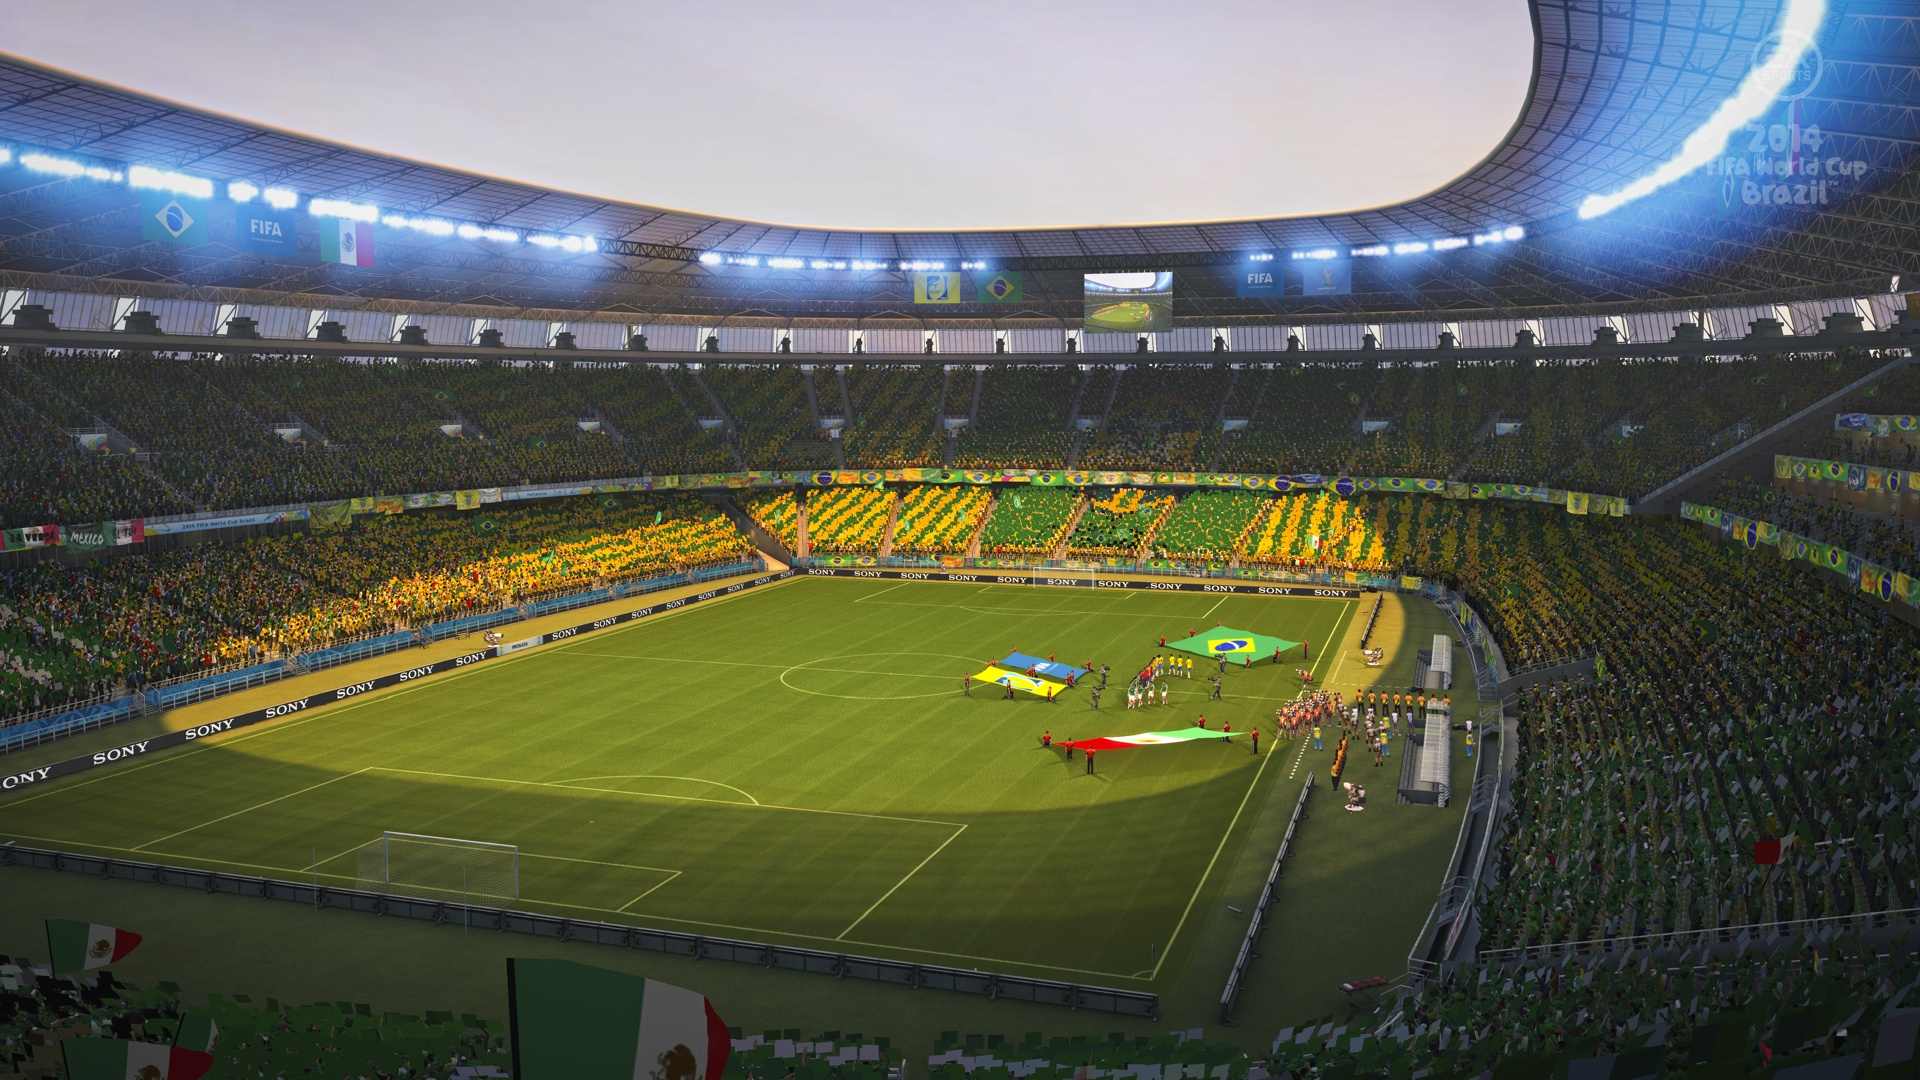 stadium  - things to do in Brazil